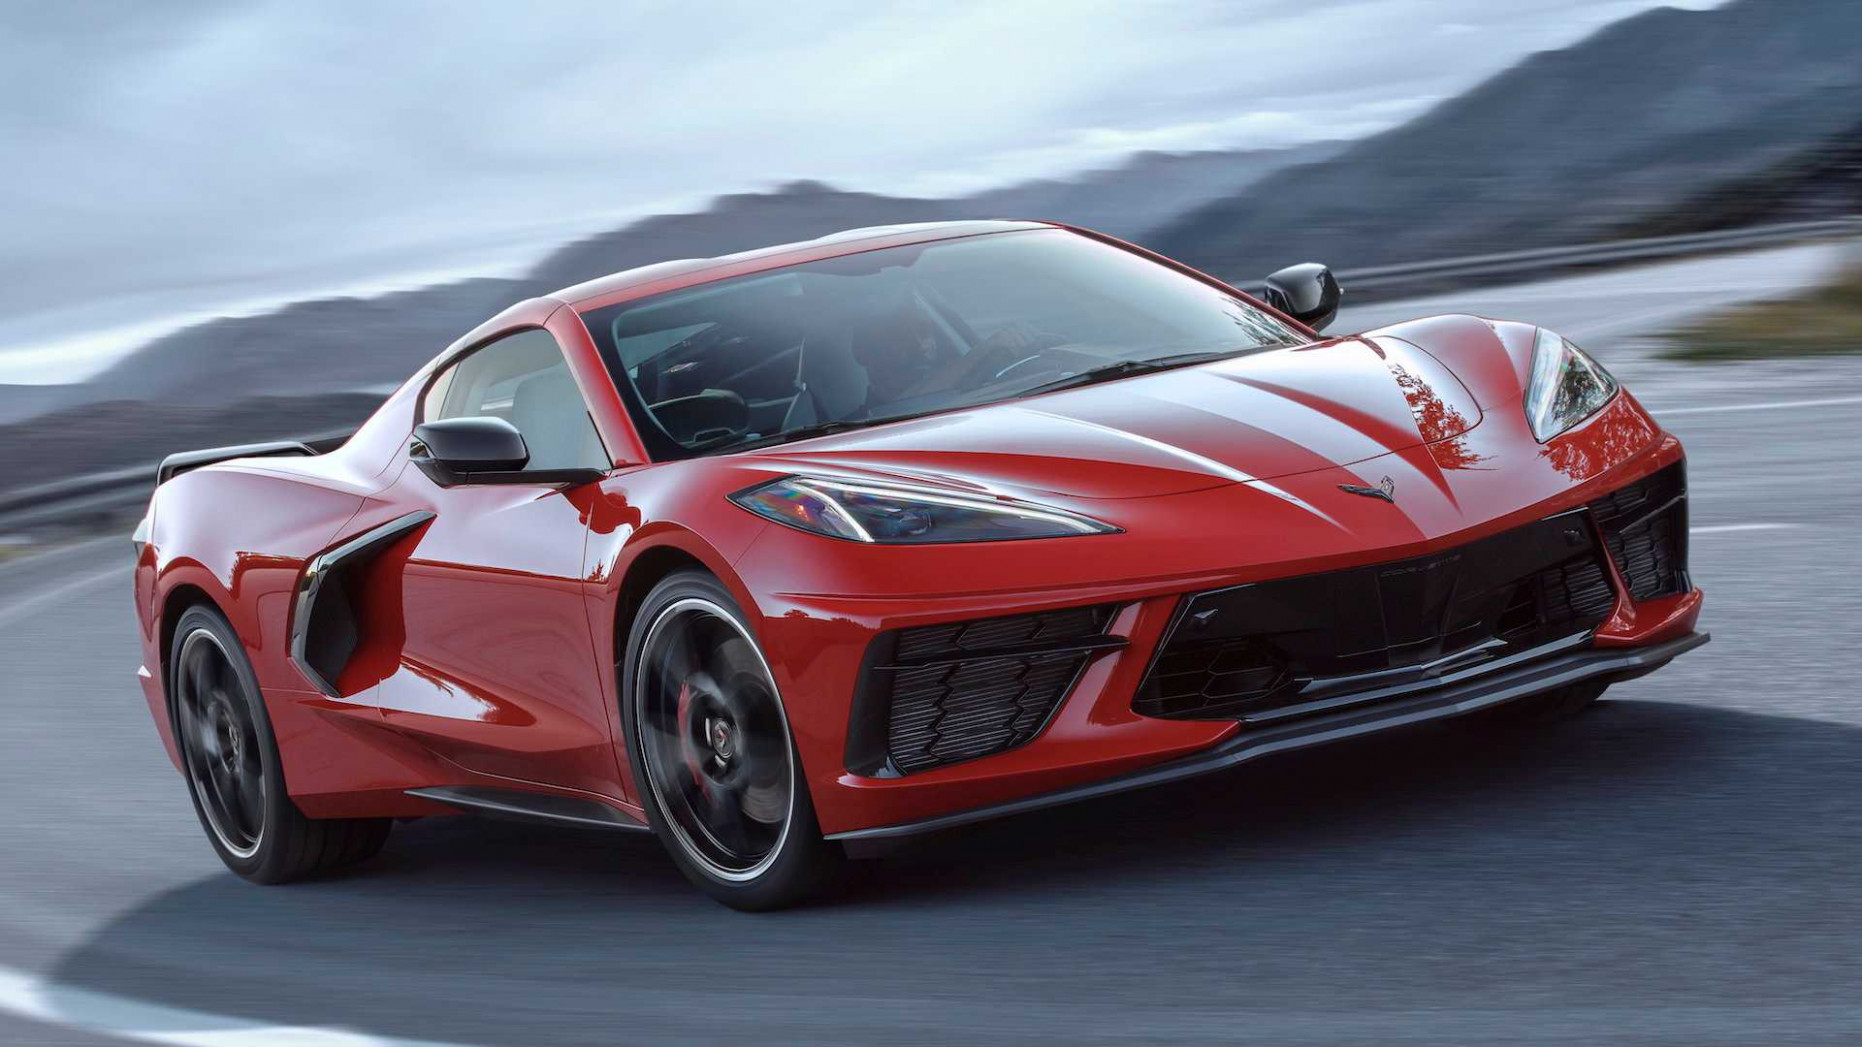 C9 Corvette ZR9 Will Get 9-HP, Twin-Turbo, Hybrid V9 Engine: Report